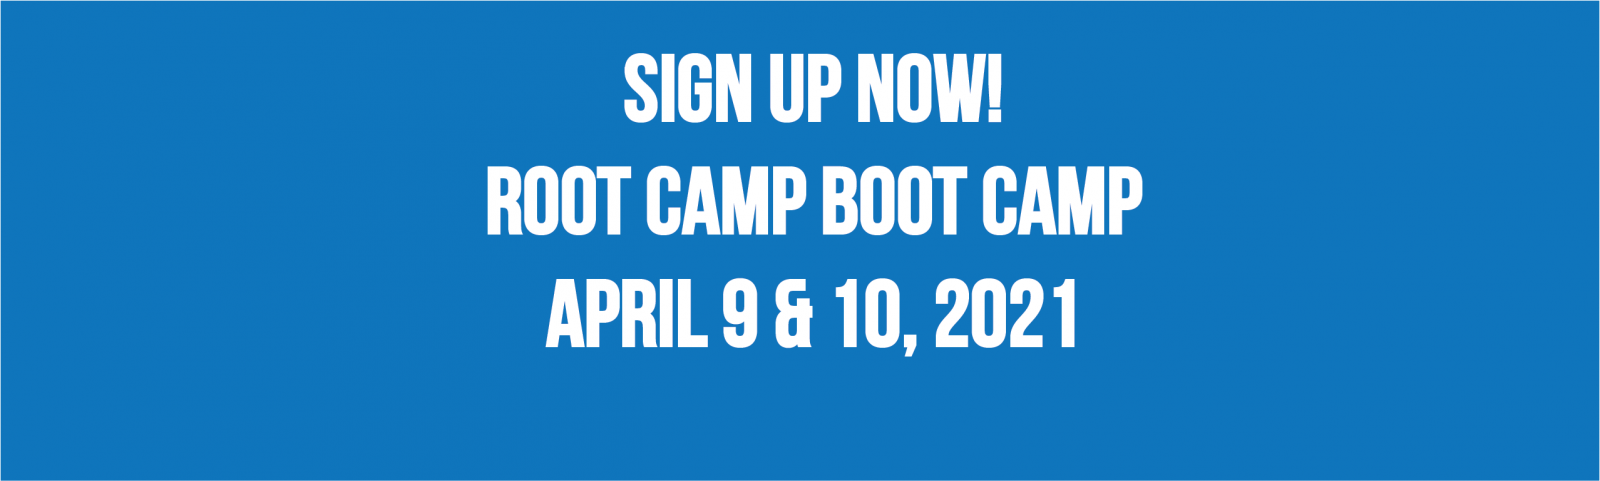 Sign Up Now! Click Here. $200 Early Bird Discount through March 10. 14 CE Credits!!